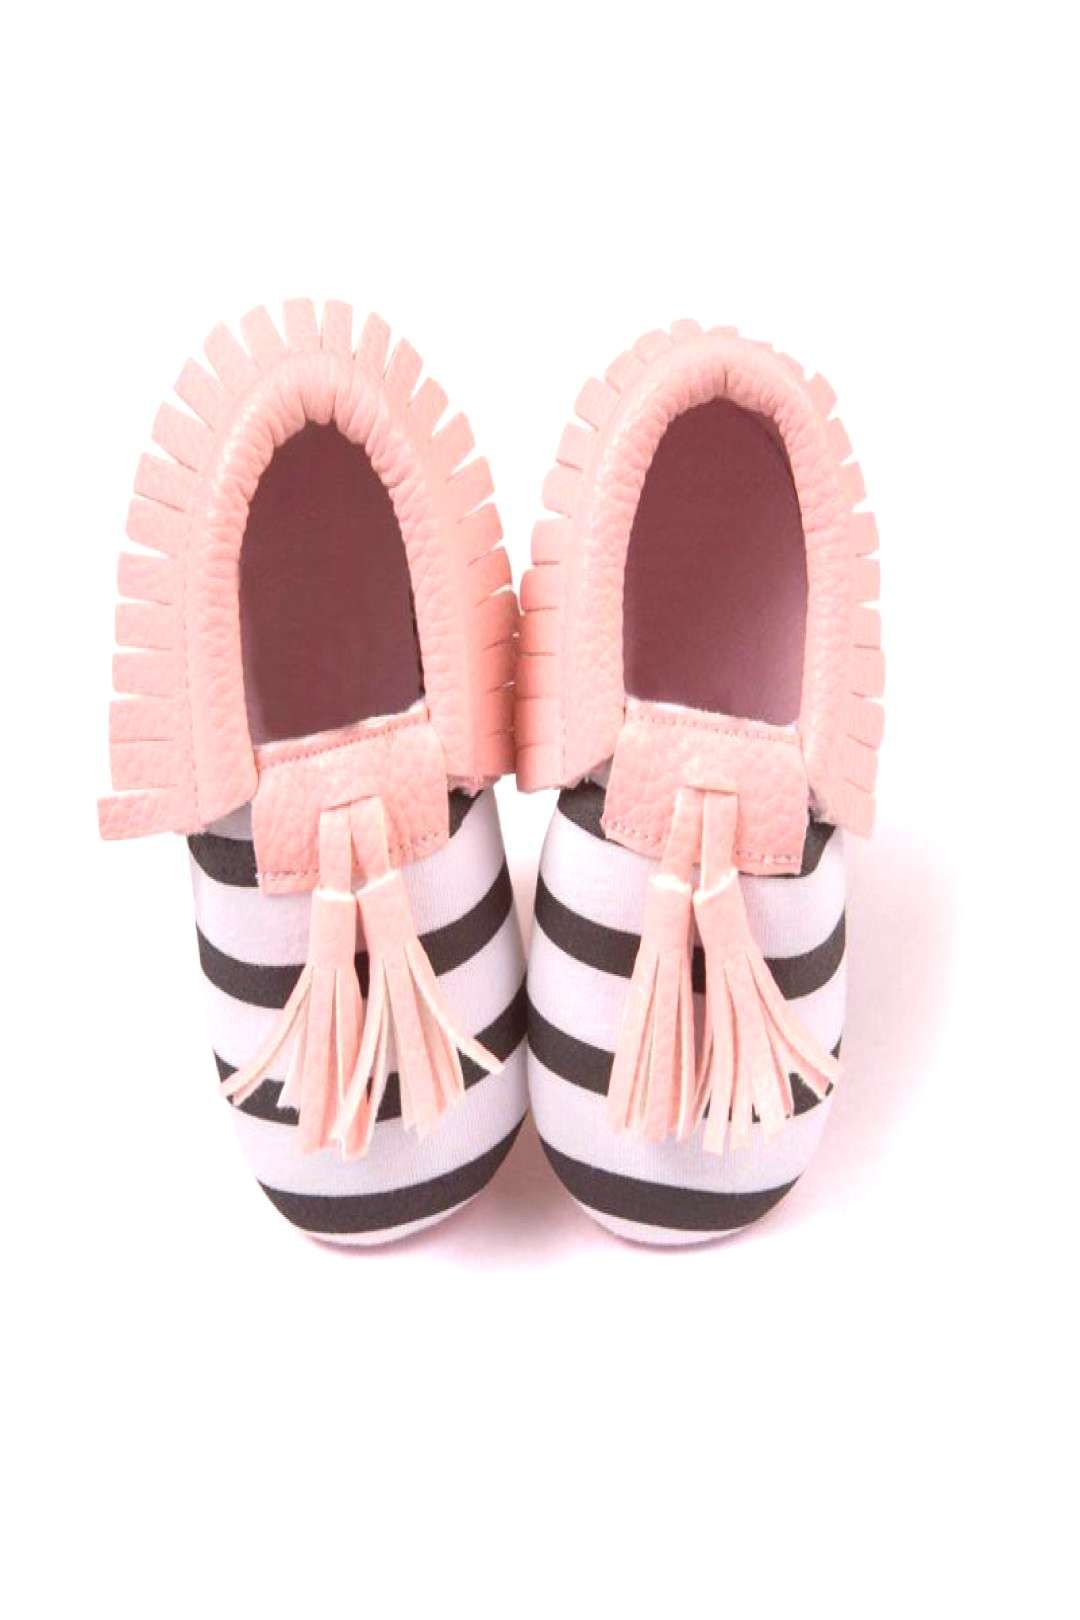 Unisex Boys Girls Soft PU Leather Tassel Moccasins Toddler Infant Moccasin Bow Shoes - Buy it Now!